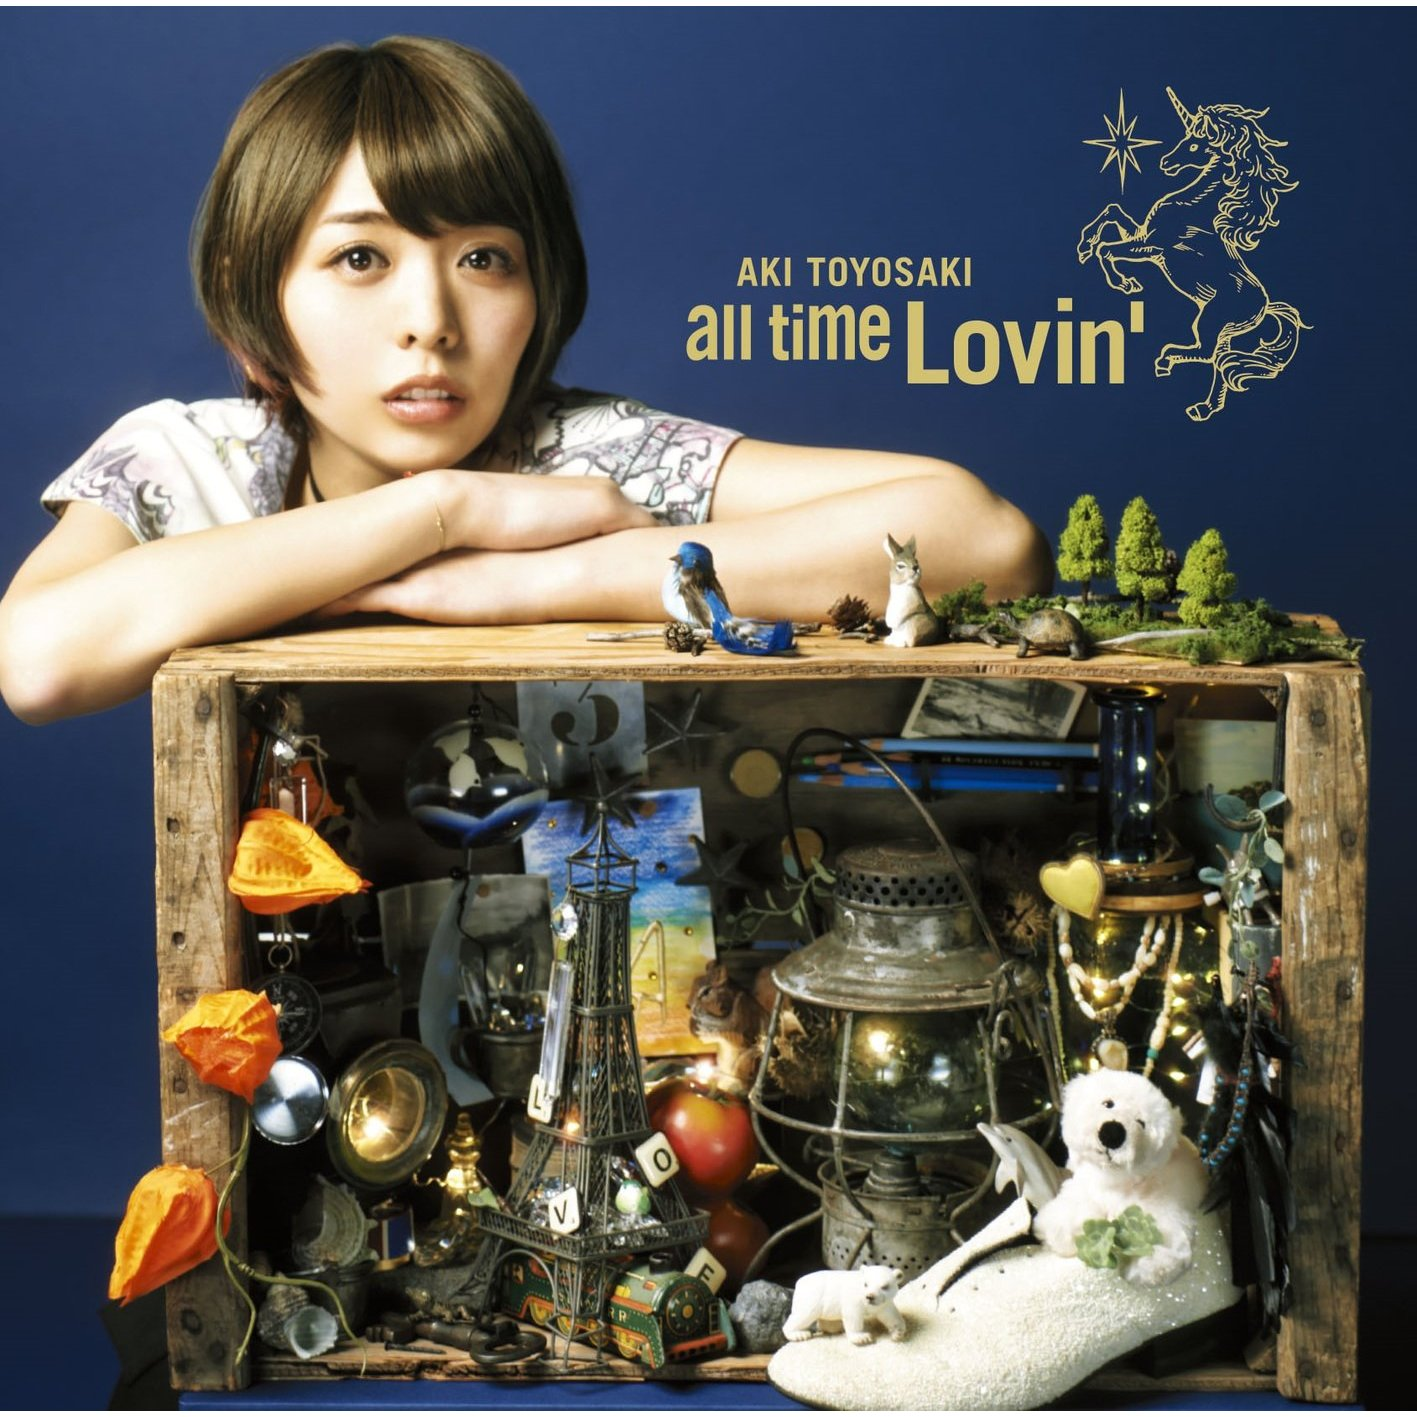 20160401.01.02 Aki Toyosaki - all time Lovin' cover 1.jpg